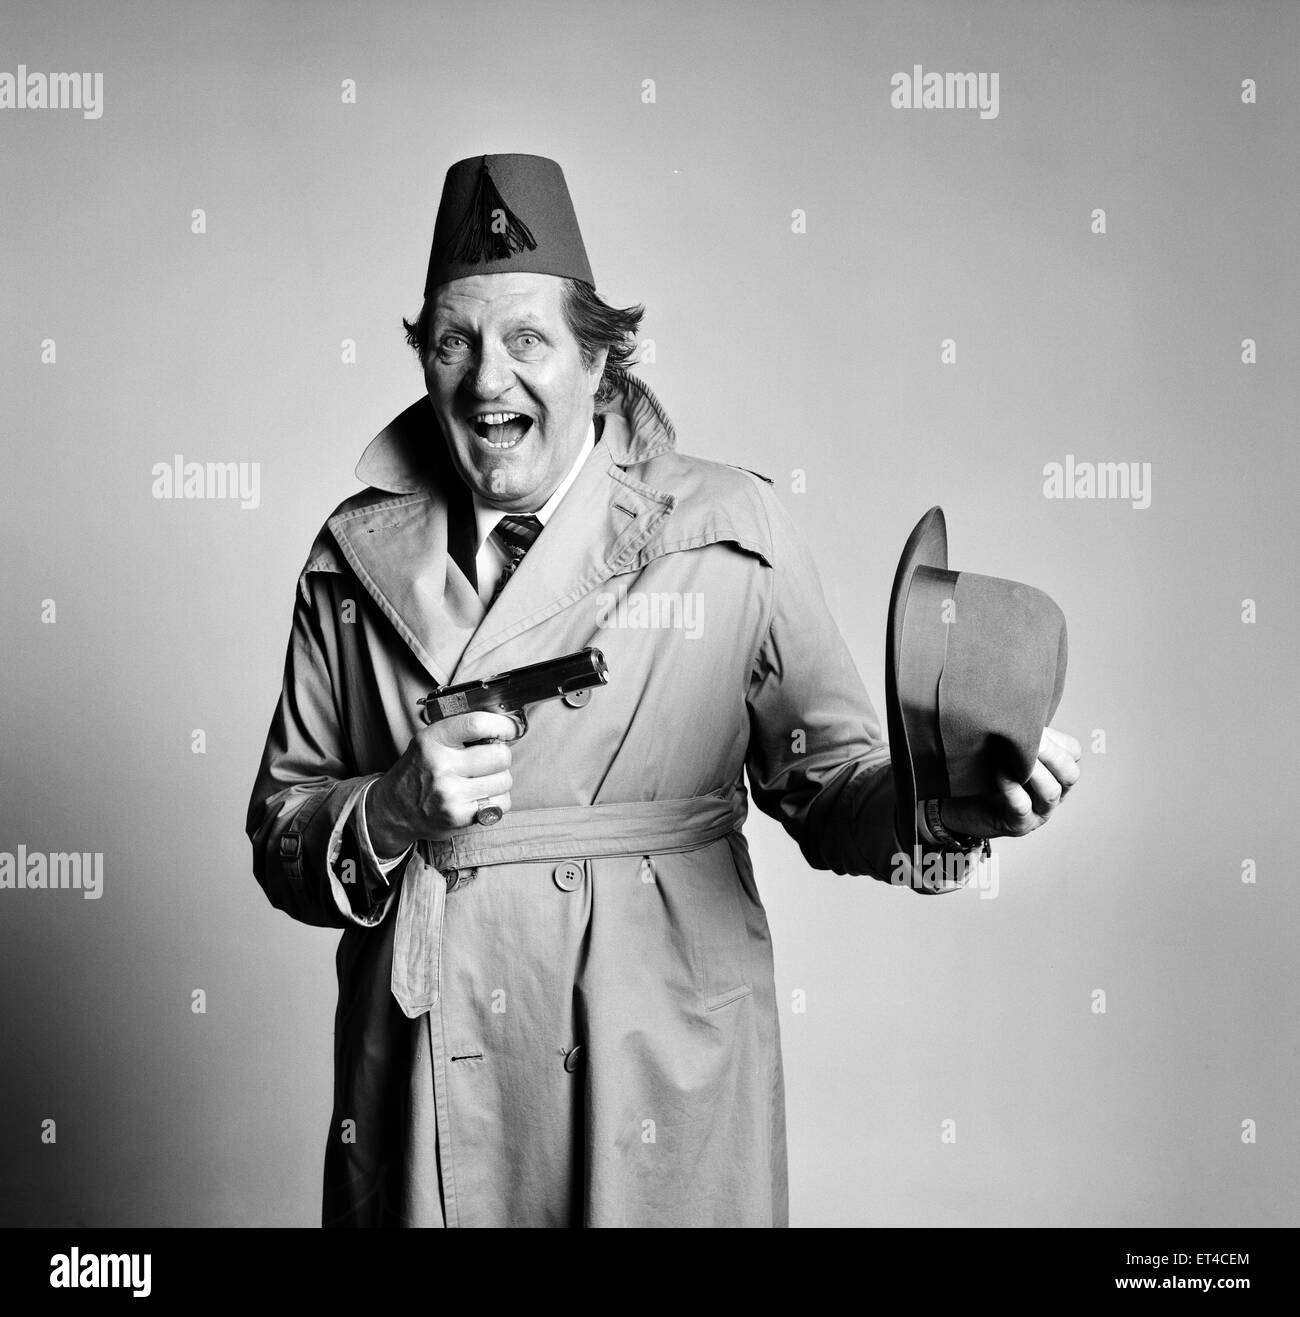 Tommy Cooper, Comedian, 19th January 1978. - Stock Image